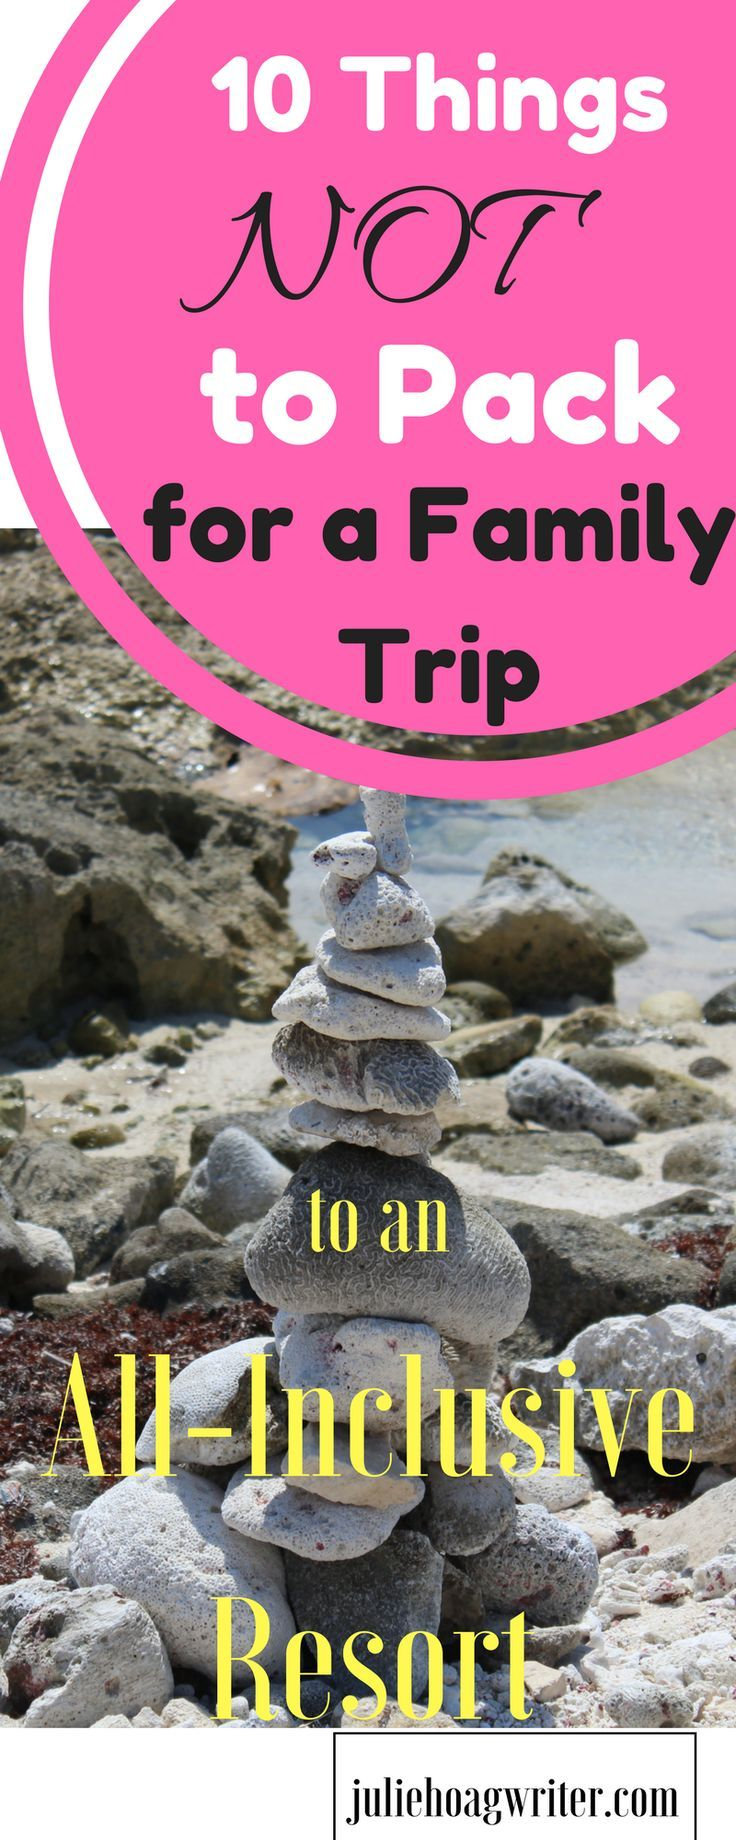 My top Ten Things Not to Pack for a Family Trip to an All-Inclusive Resort. Family travel tips and packing tips for a family trip to an all-inclusve resort in Mexico. What not to pack for a family vacation to a beach resort that is all inclusive. Packing light tips for what not to bring along on a beach vacation. #familytravel #allinclusive #packinglight #packinglist #packingtips #packing #inmybag #familyvacation #traveltips #vacationtips #traveling #travelblog #travelmore #travelersnotebook